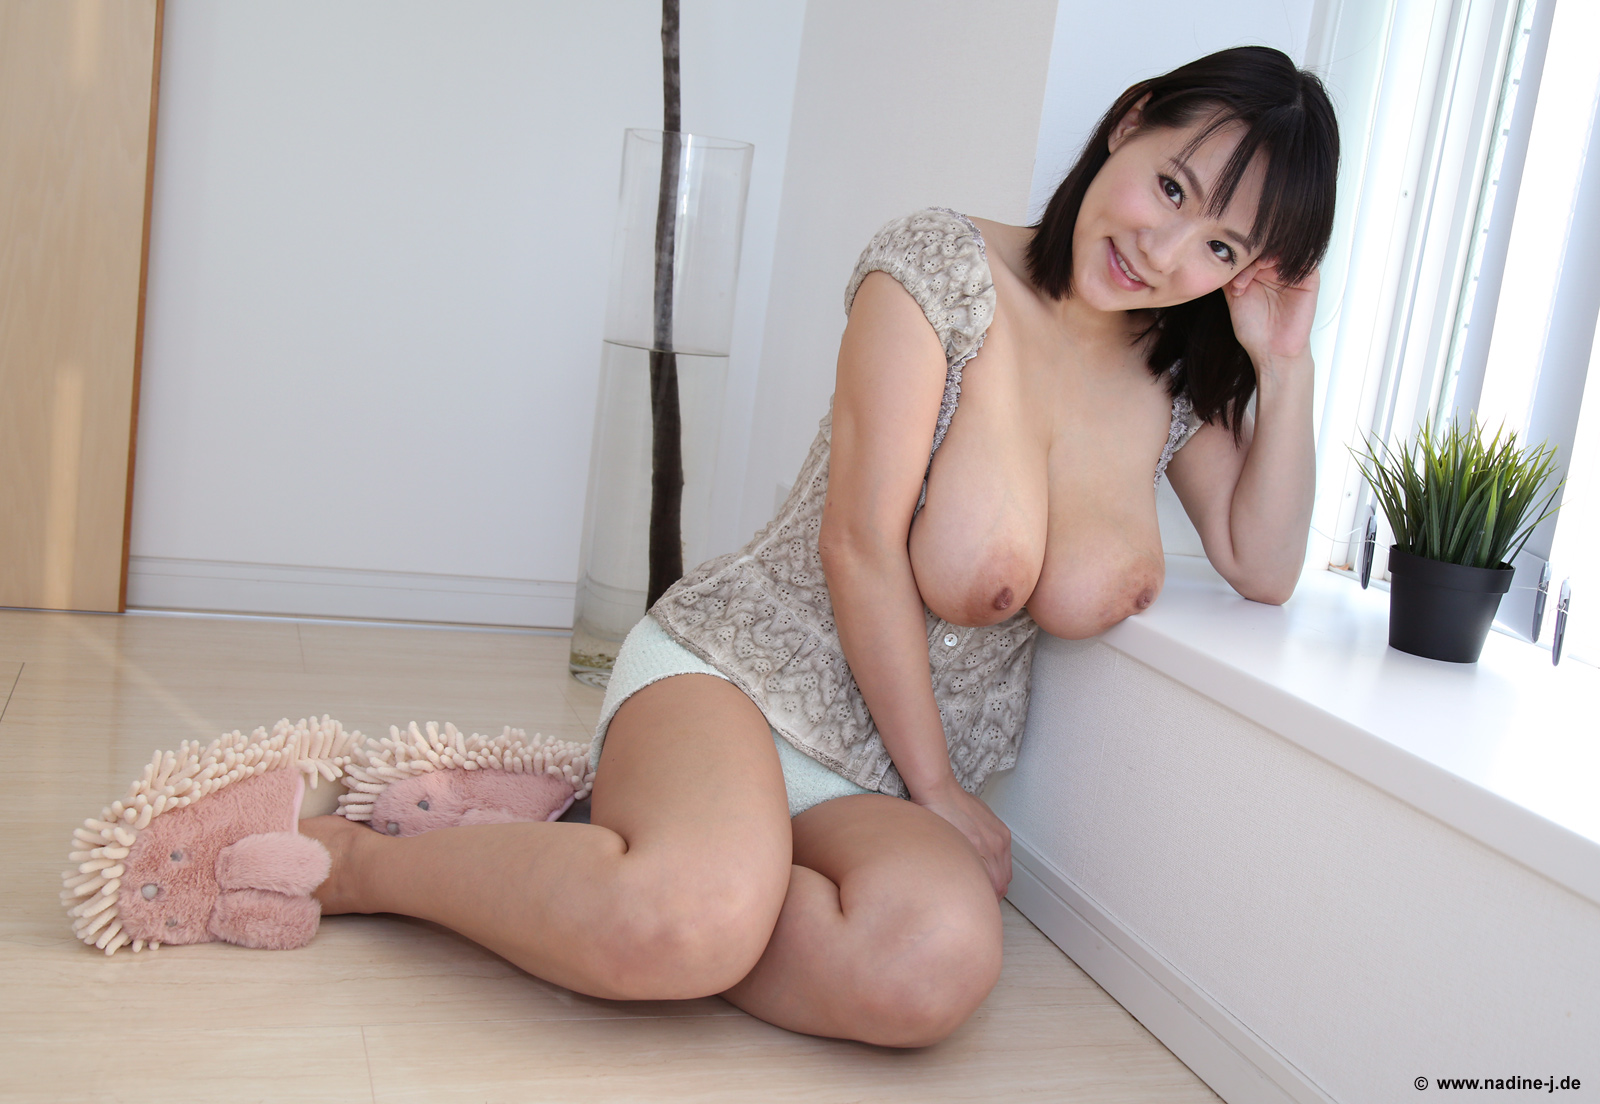 Sweet cutie with glorious flesh presents cuddly melons